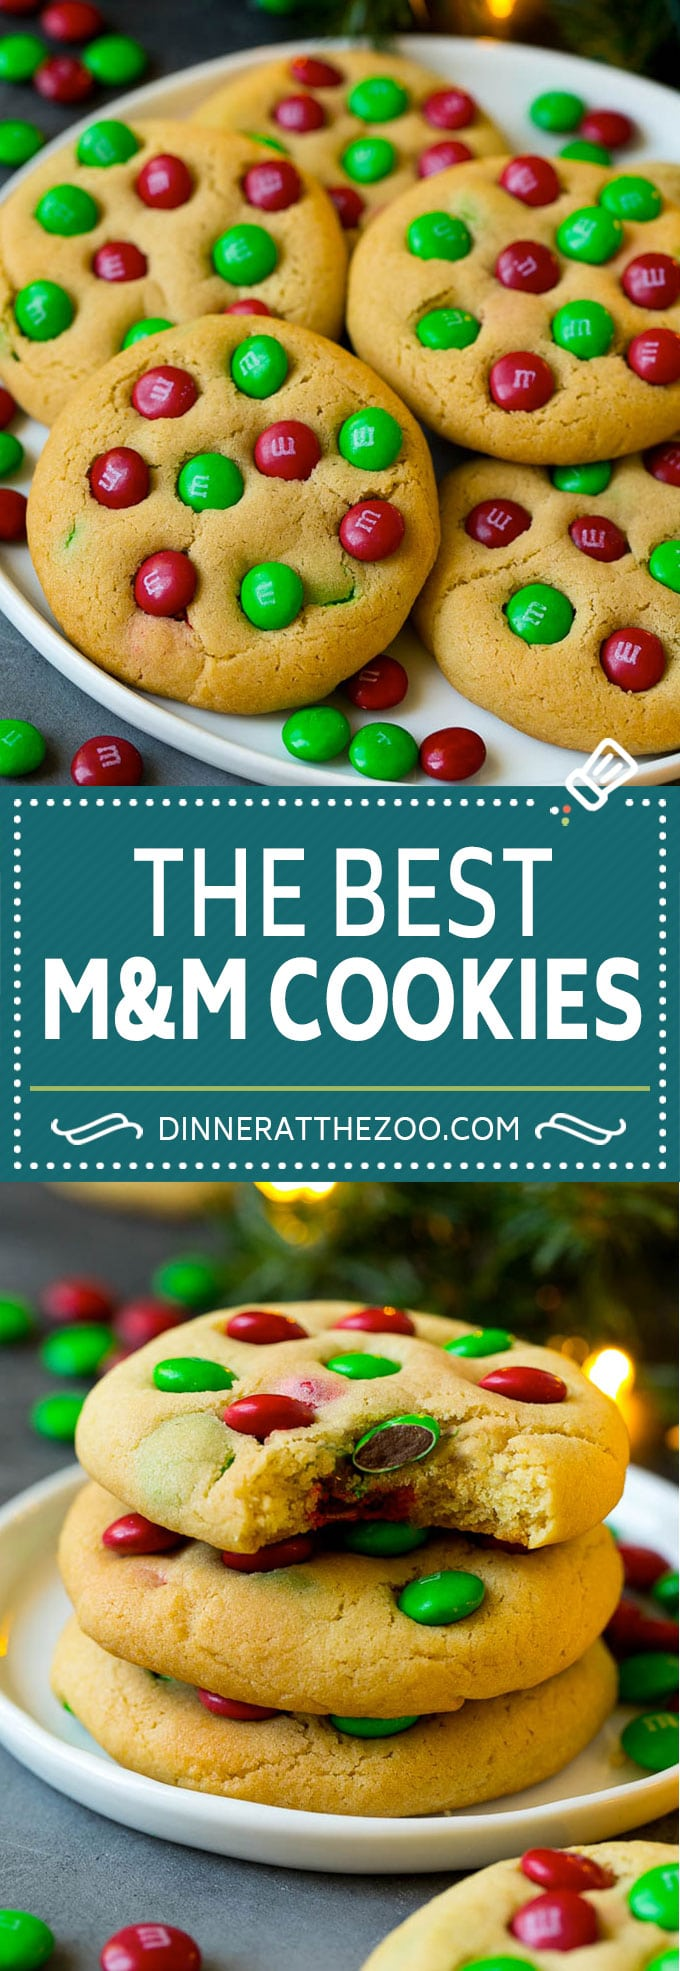 M&M Cookies Recipe #chocolate #cookies #baking #dessert #christmas #dinneratthezoo